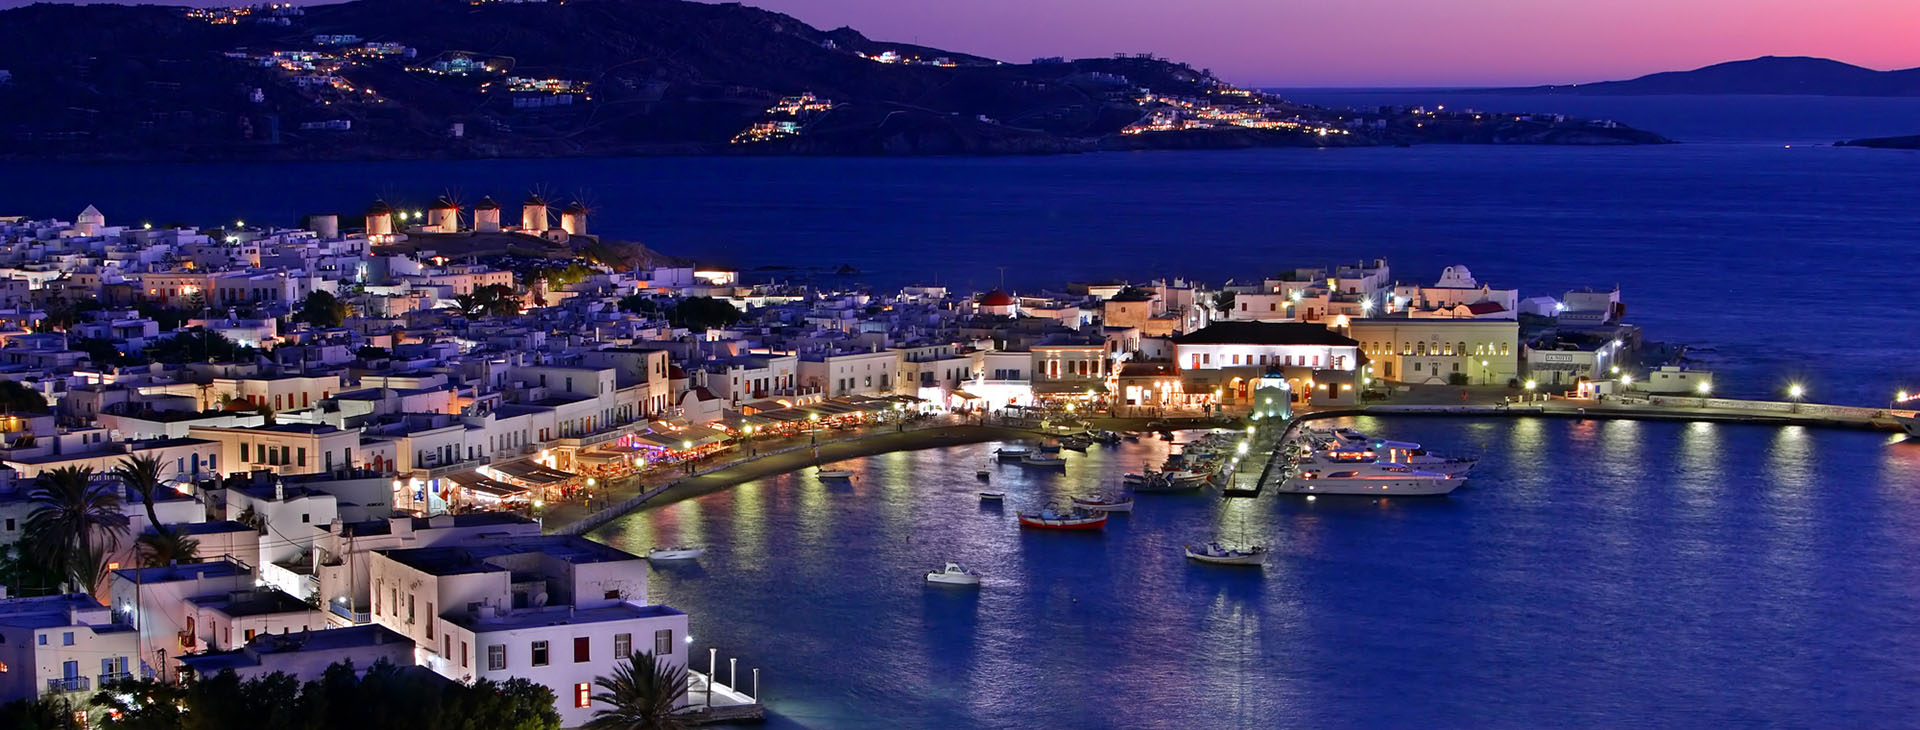 Mykonos island by night